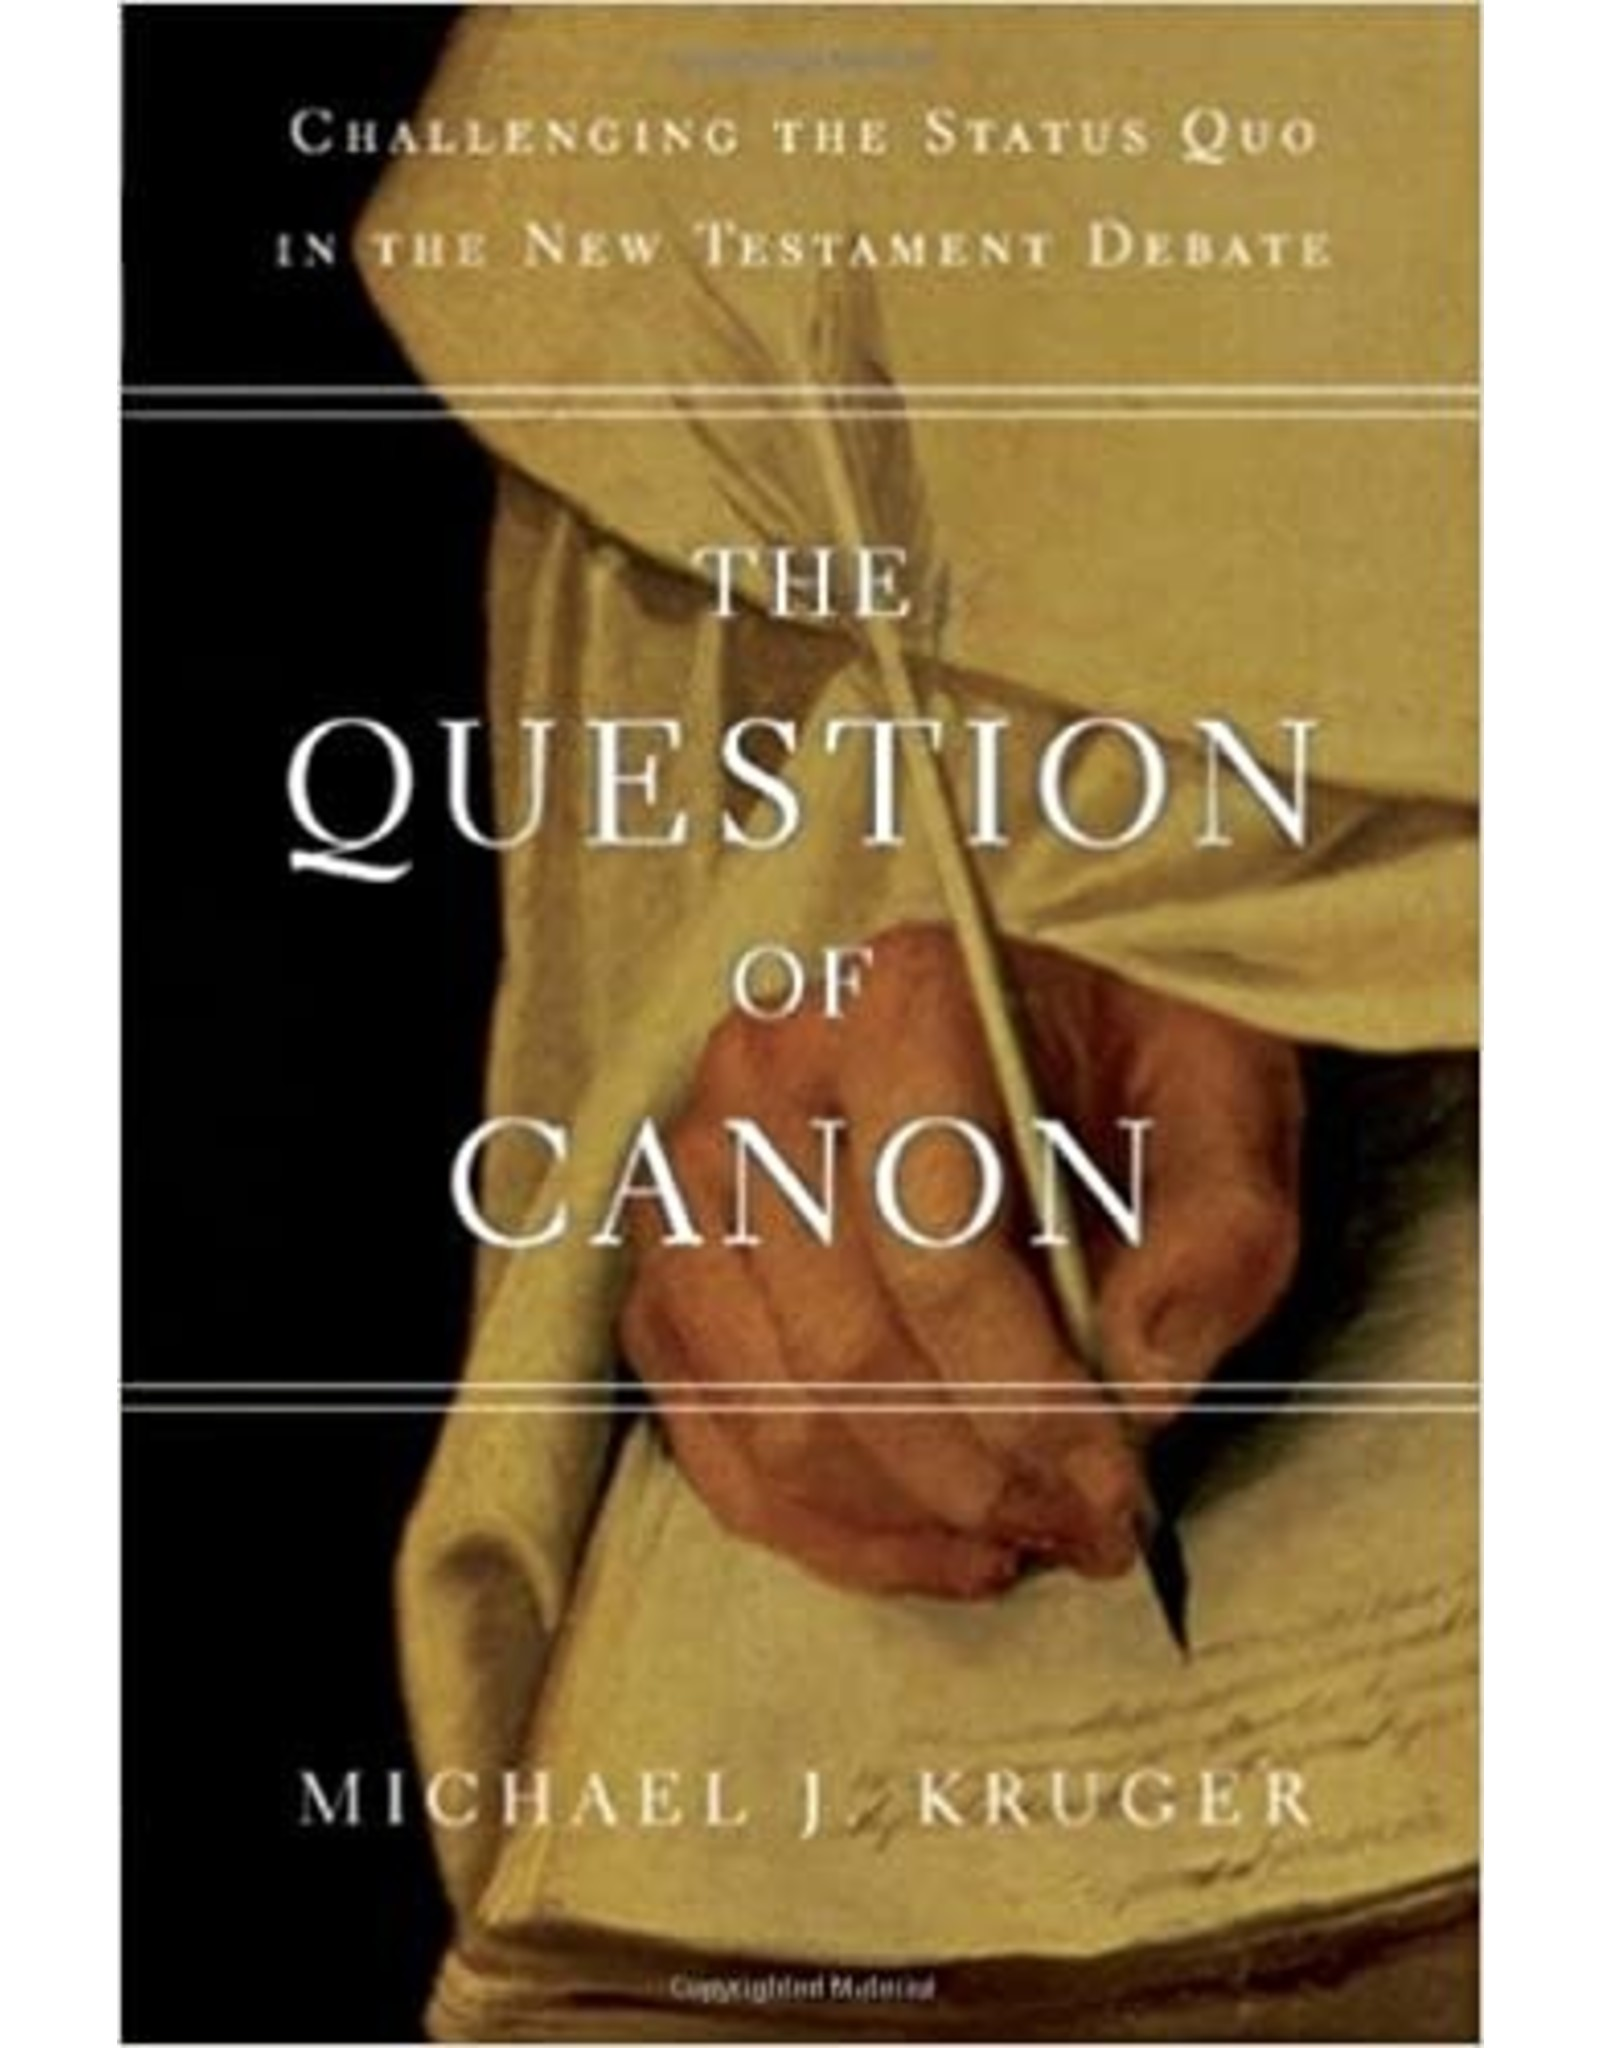 Kruger The Question of Canon: Challenging the Status Quo in the New Testament Debate